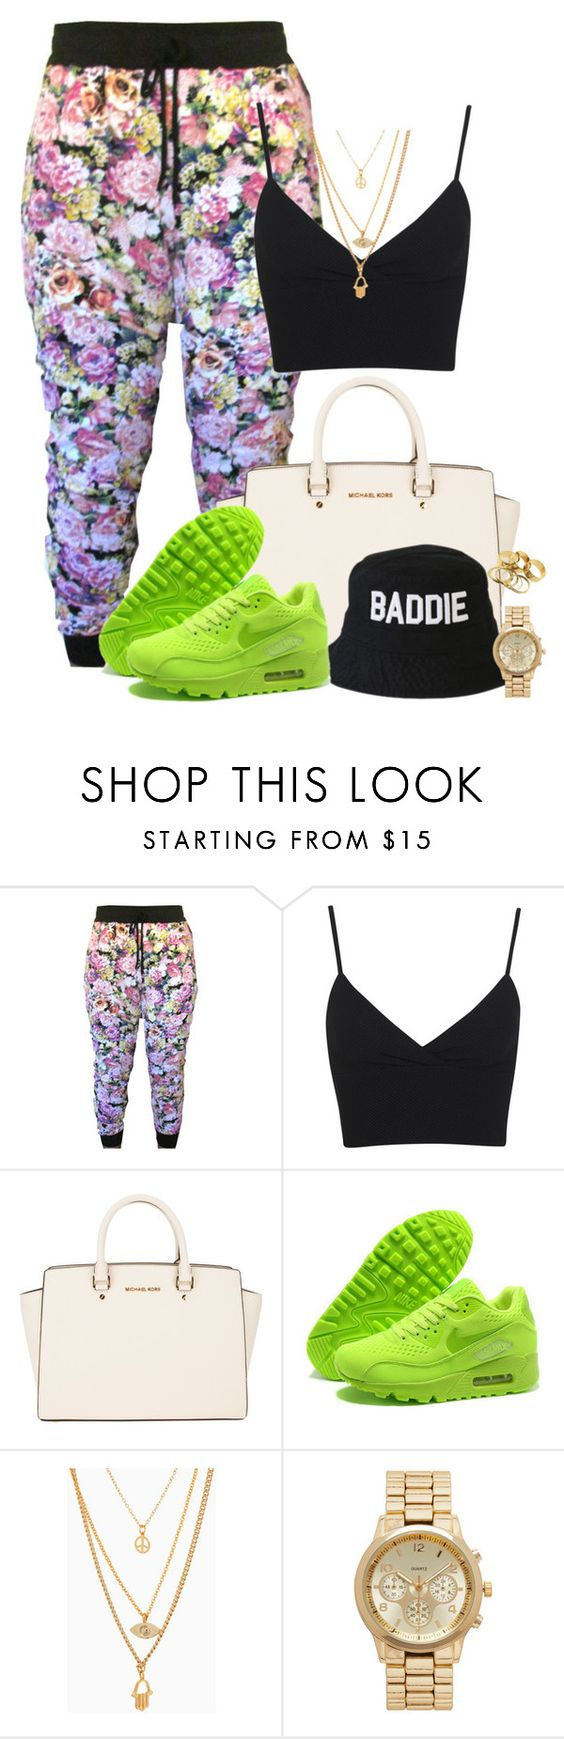 """""""Joggers for Sell (Link in description)"""" by annellie ❤ liked on Polyvore featuring Miss Selfridge, MICHAEL Michael Kors, HLZBLZ, NIKE and Forever New"""